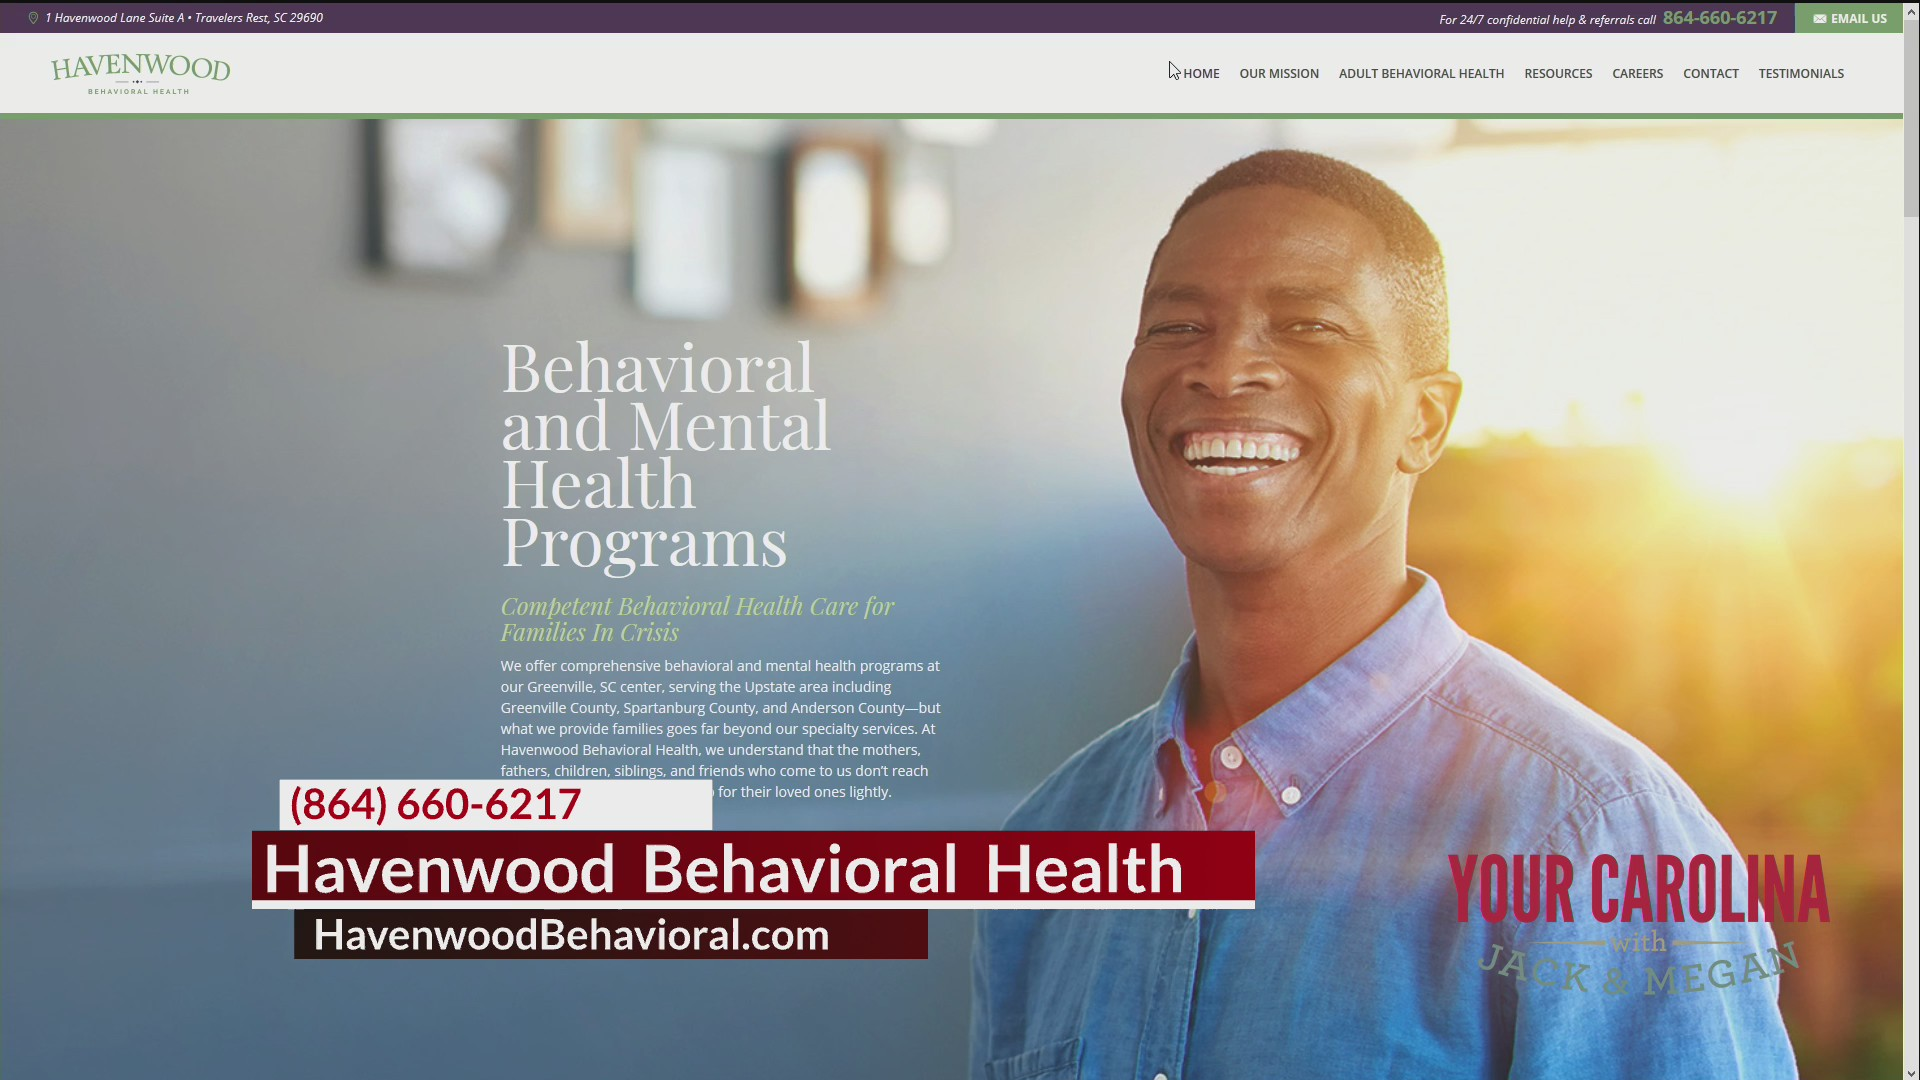 Havenwood Behavioral Health - Mental Health Care For Veterans